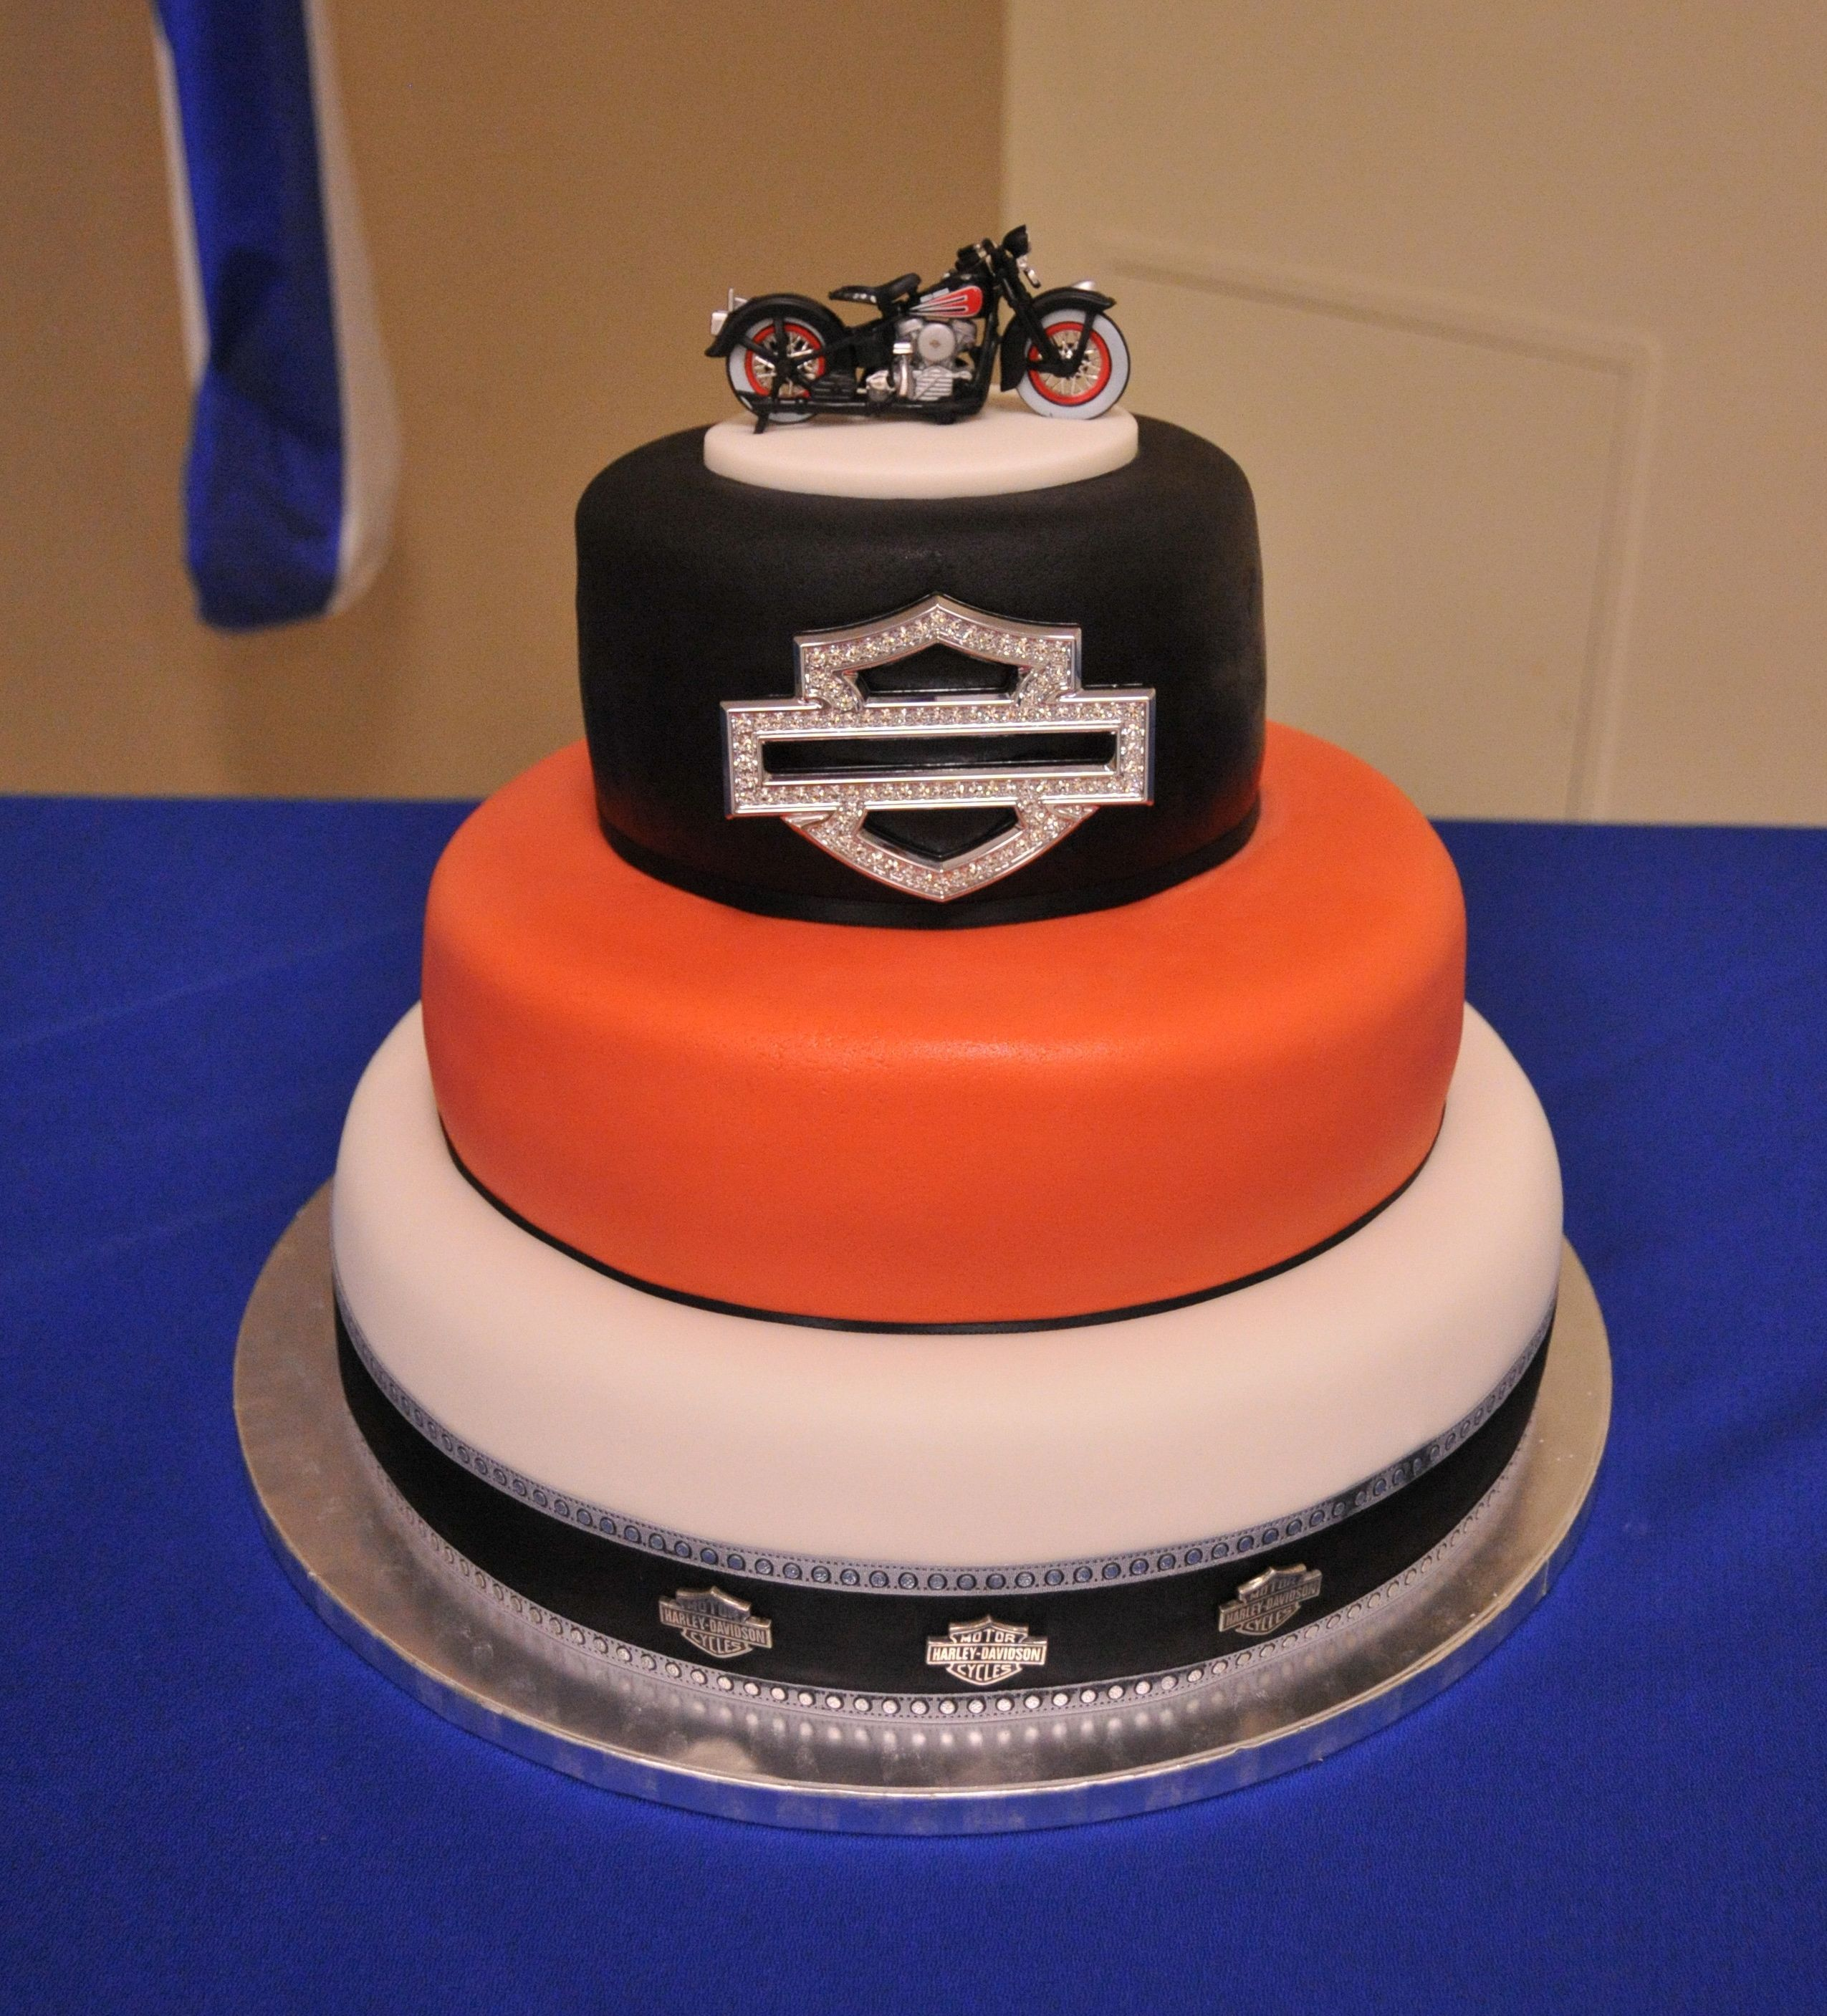 harley davidson wedding cake ideas harley davidson wedding cakes images wedding cake 15073